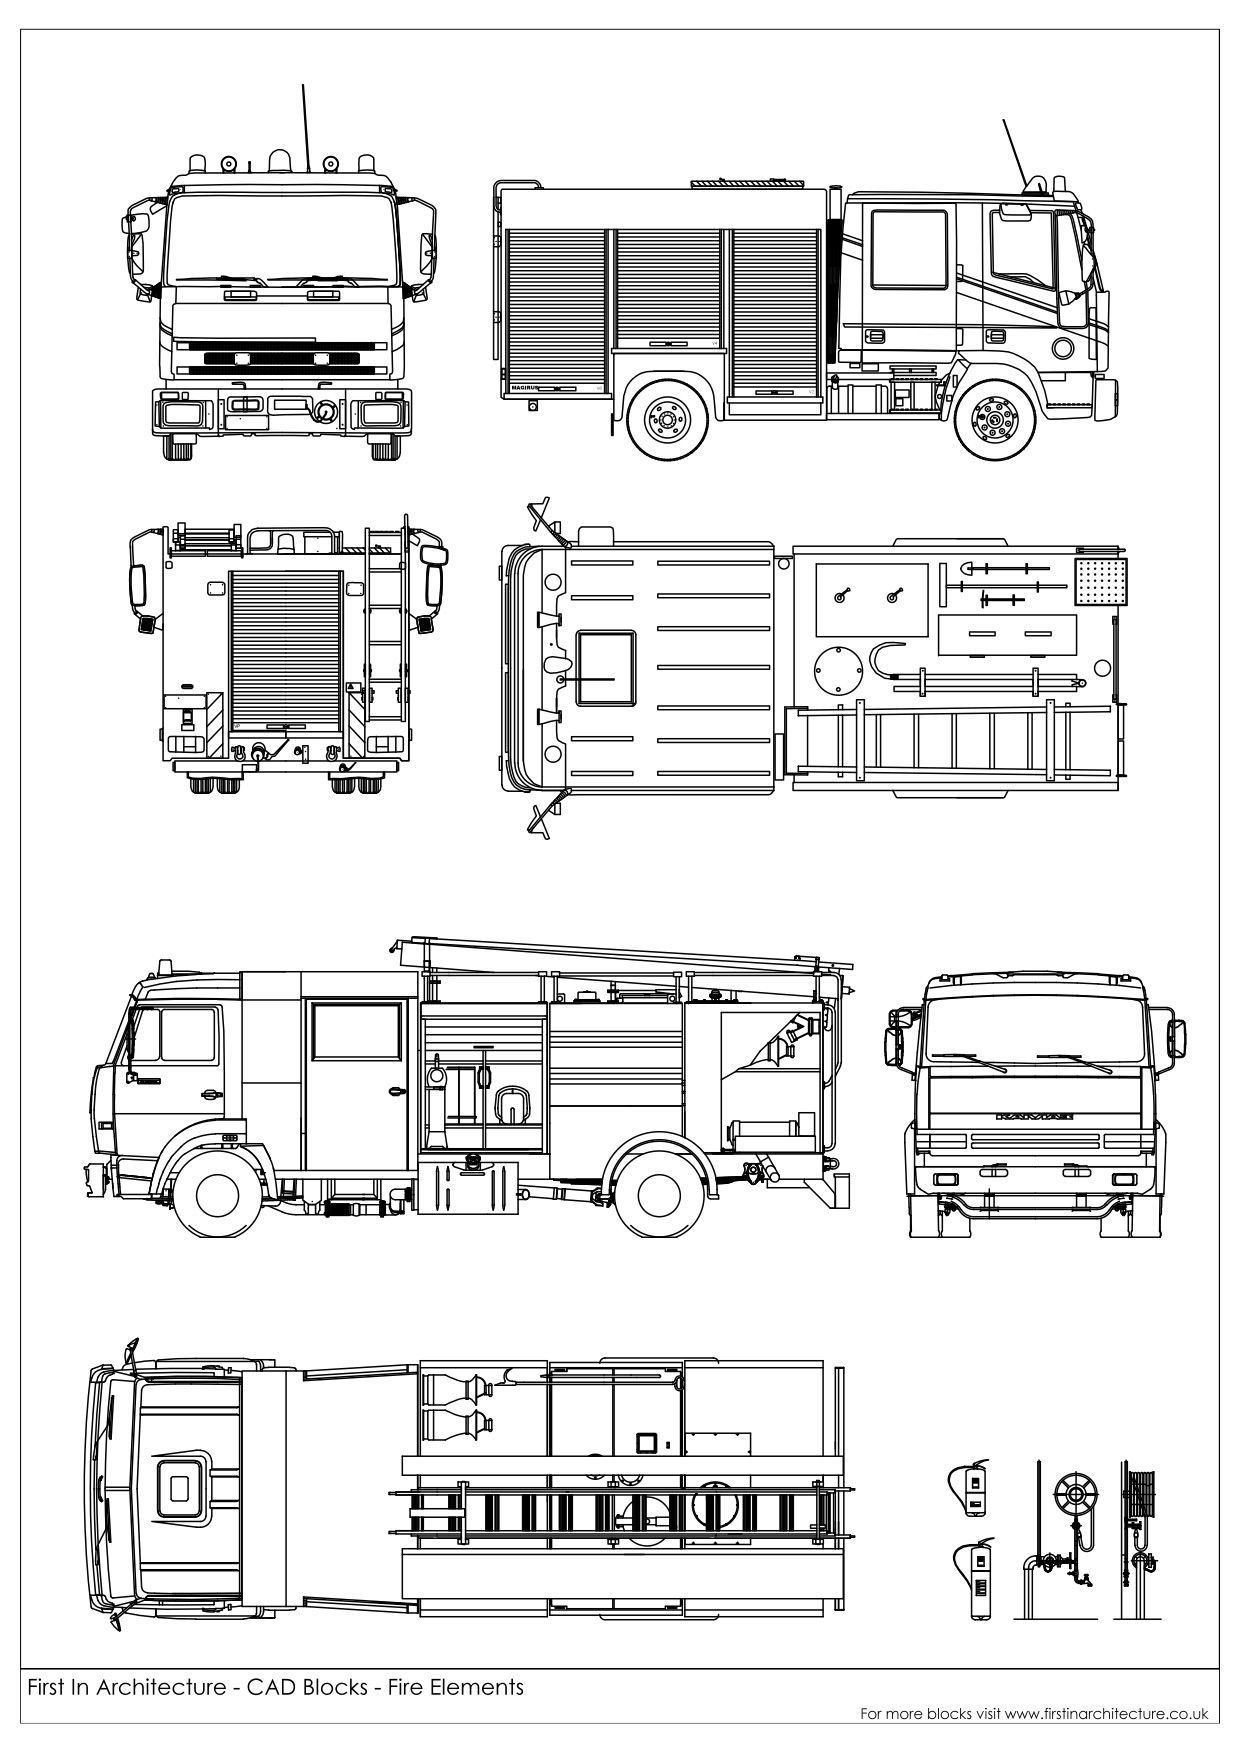 Fire elements cad blocks autocad pinterest autocad and a selection of free cad blocks featuring fire trucks fire engines fire extinguishers and fire symbols and signs buycottarizona